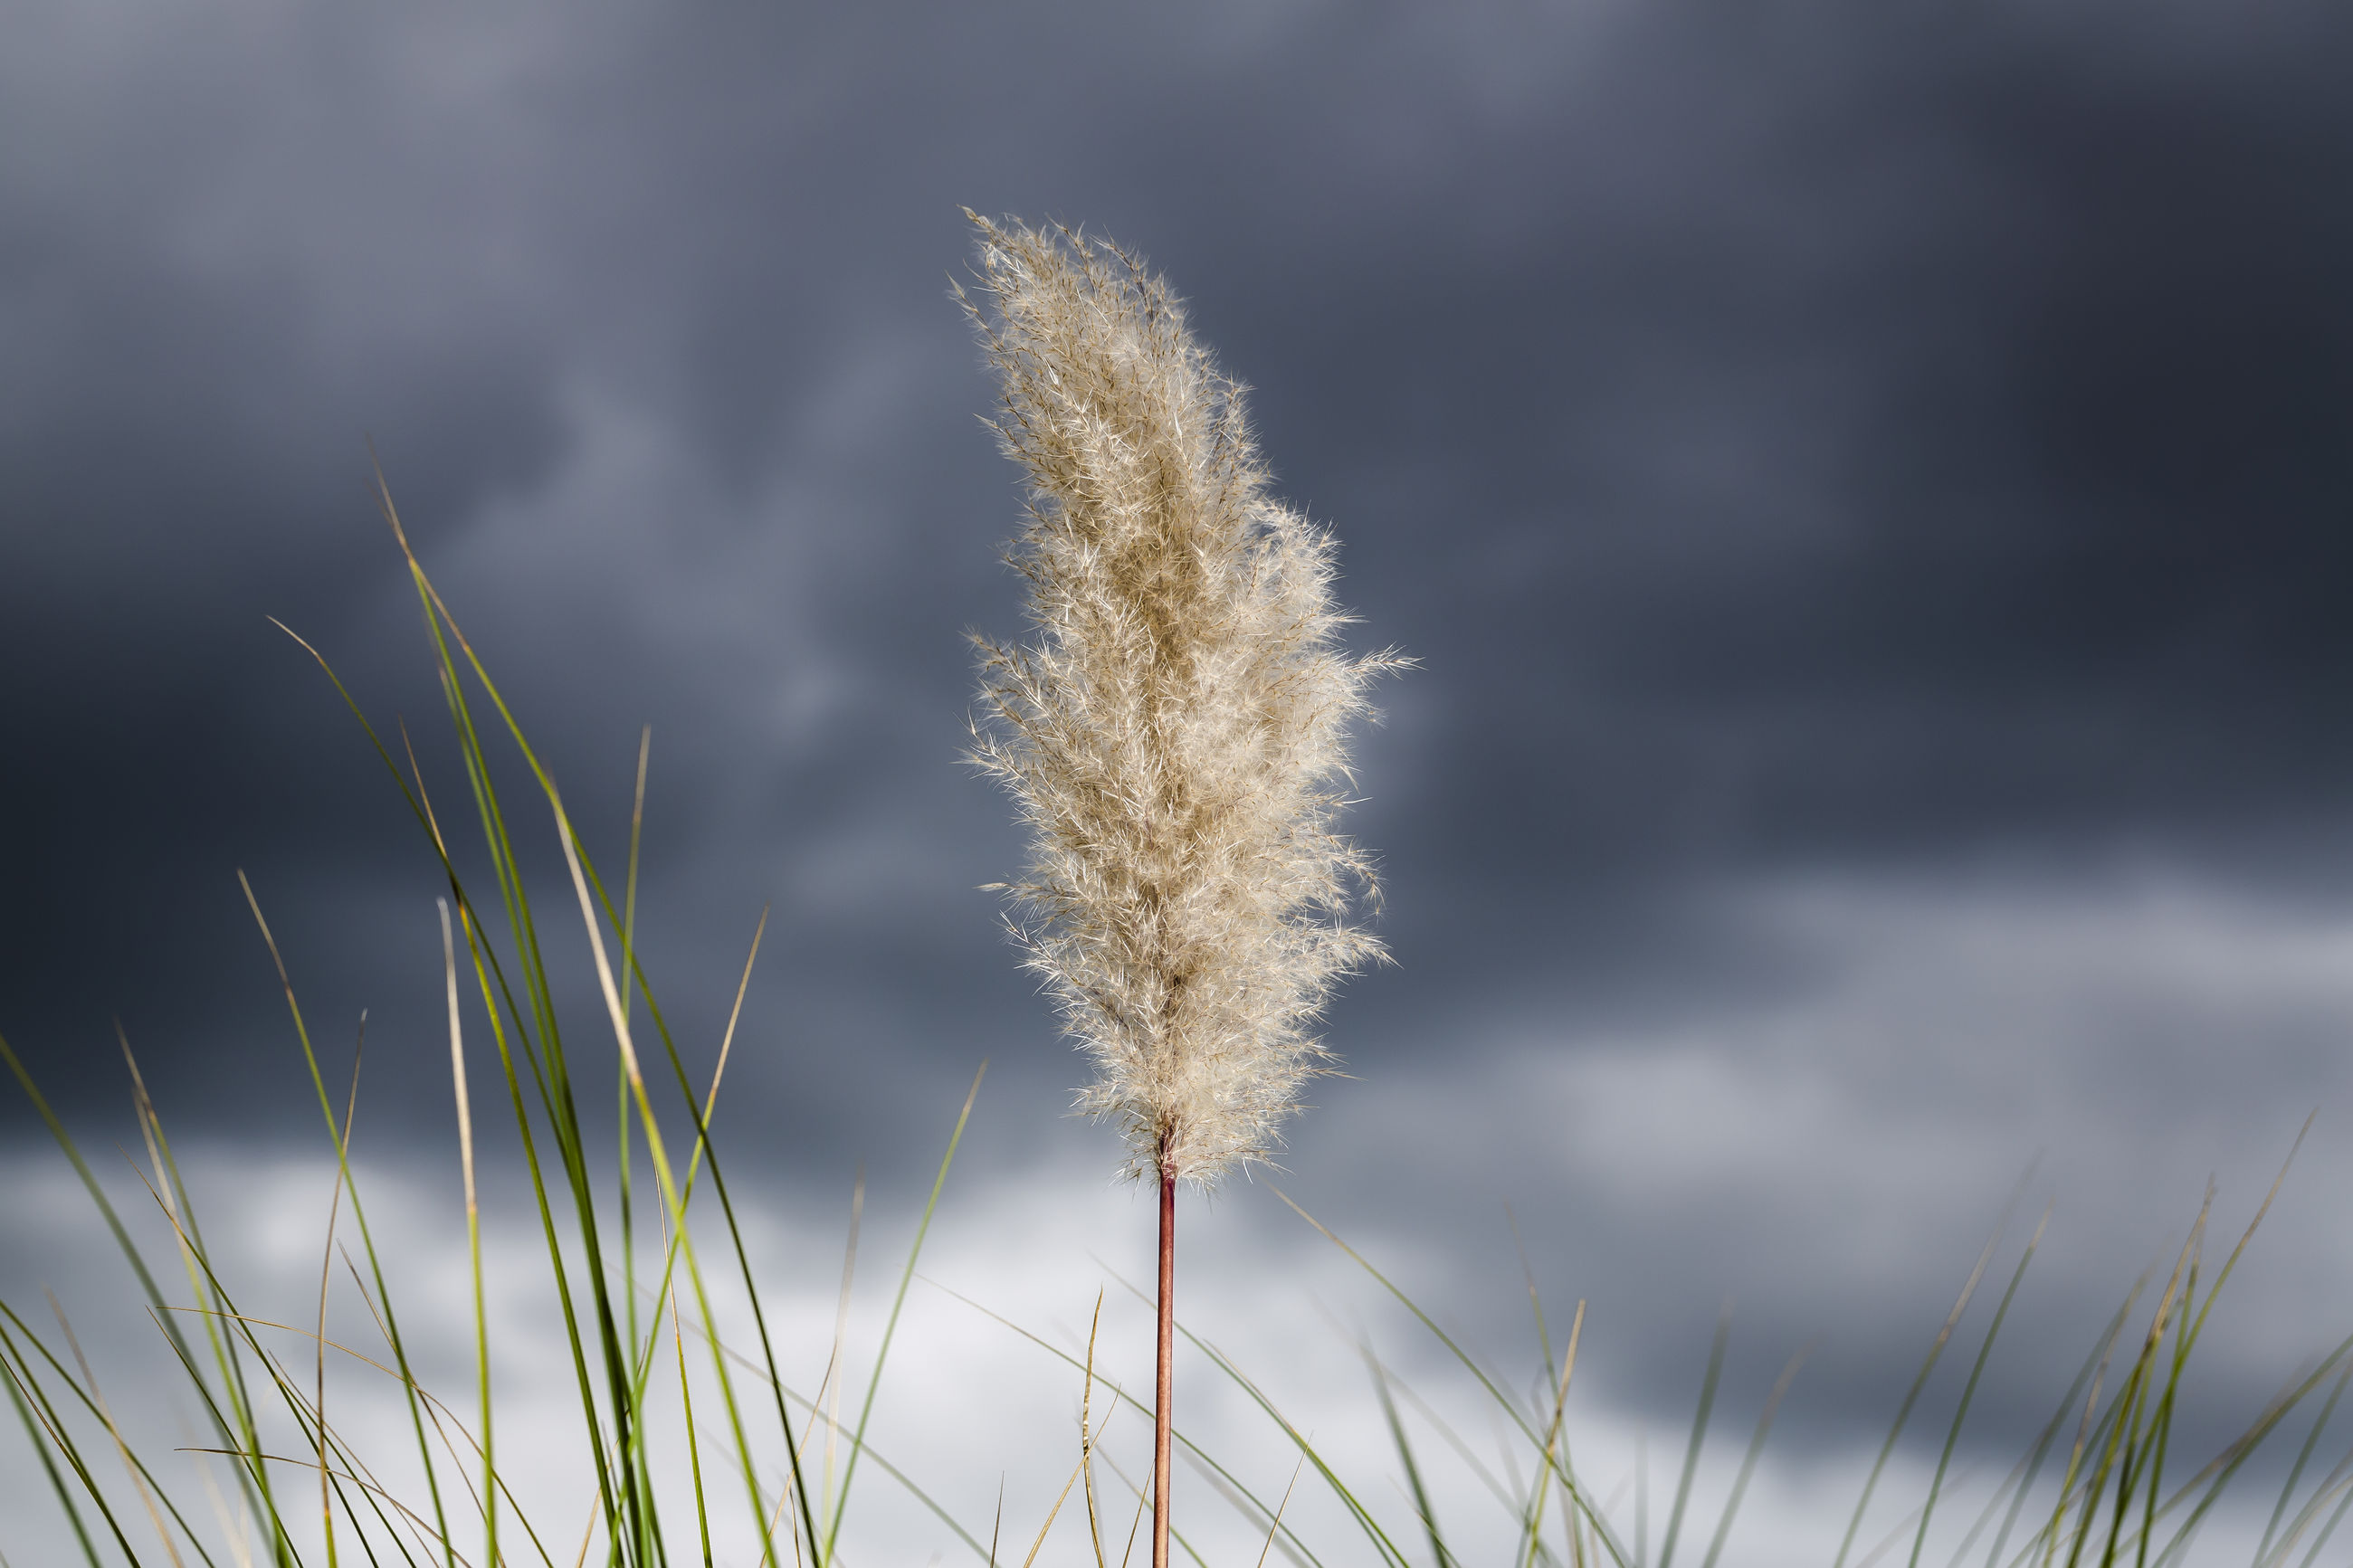 nature, plant, growth, focus on foreground, beauty in nature, no people, day, grass, outdoors, close-up, sky, fragility, freshness